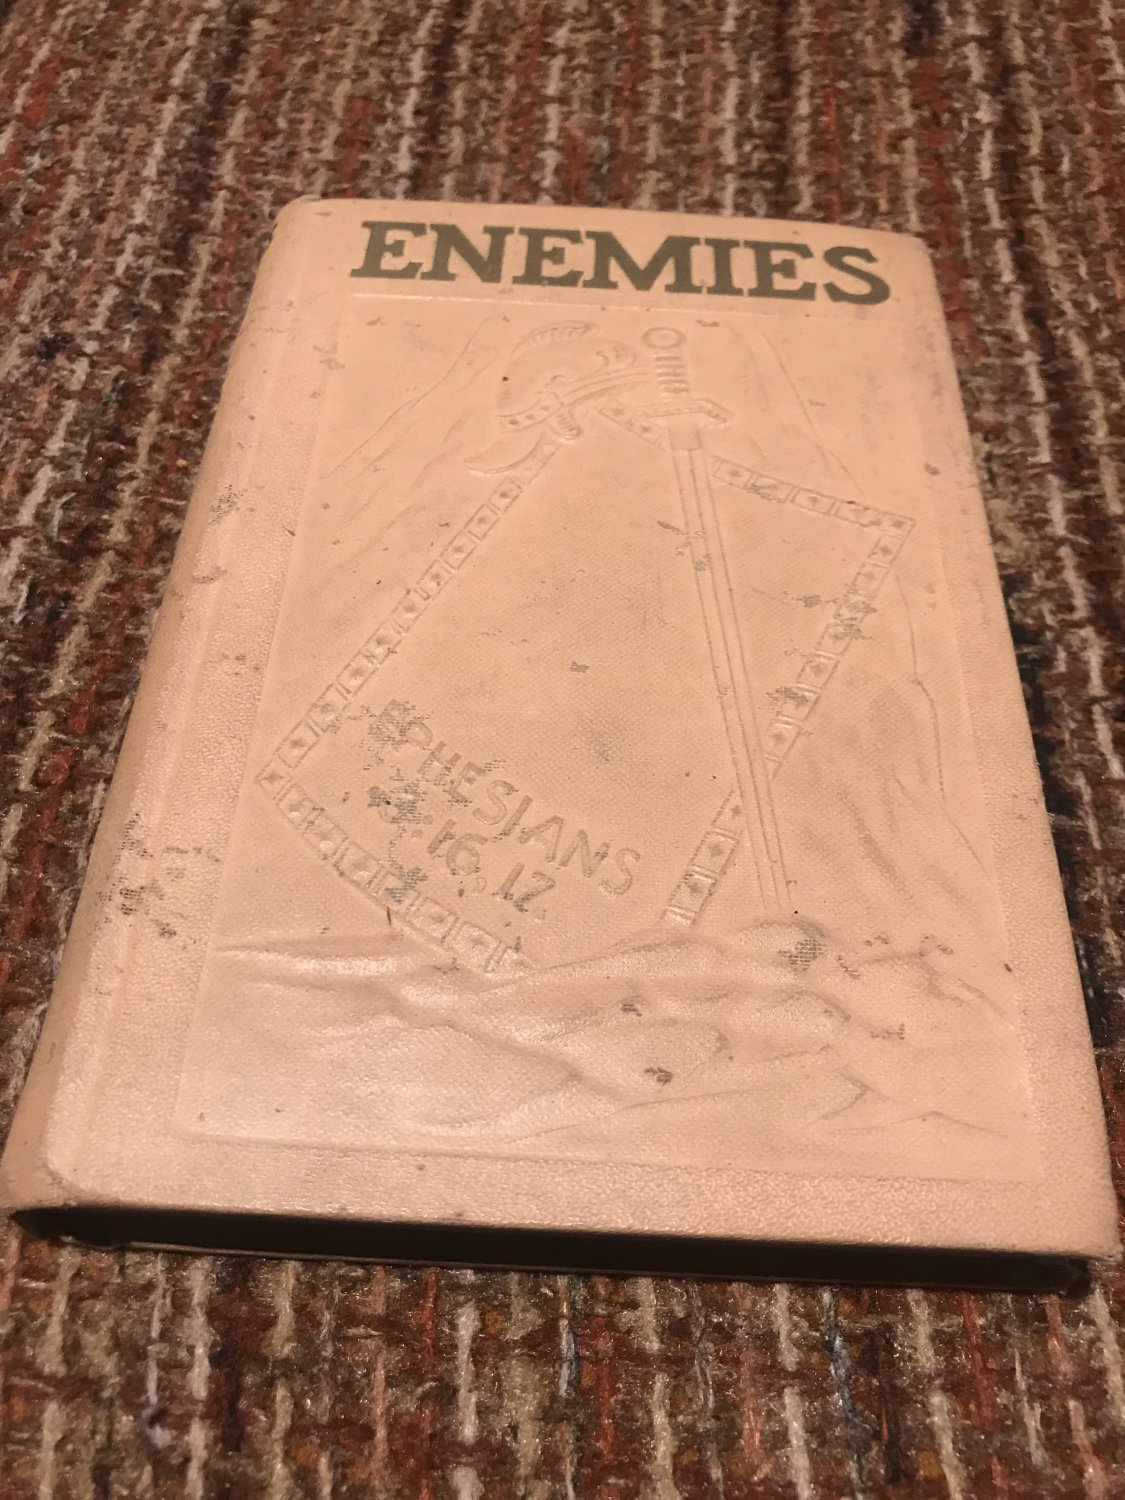 ENEMIES: THE PROOF THAT DEFINITELY IDENTIFIES ALL ENEMIES Hardcover � 1937 by j.f. rutherford